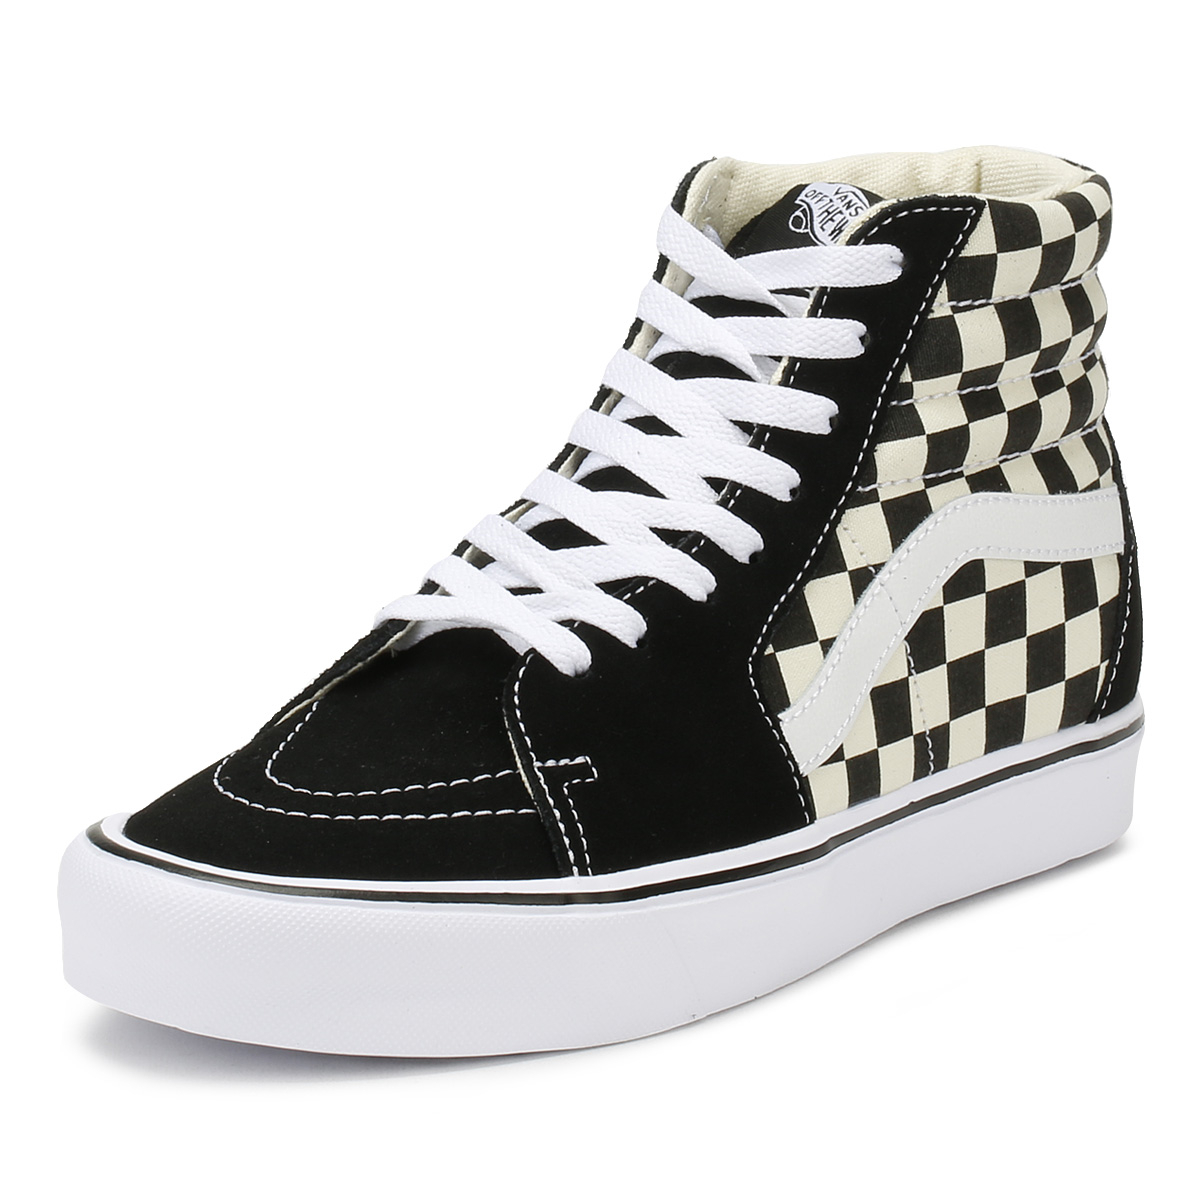 7697a78b2a Details about Vans Unisex Black   White Trainers Checkerboard SK8-Hi Lite Lace  Up Skate Shoes